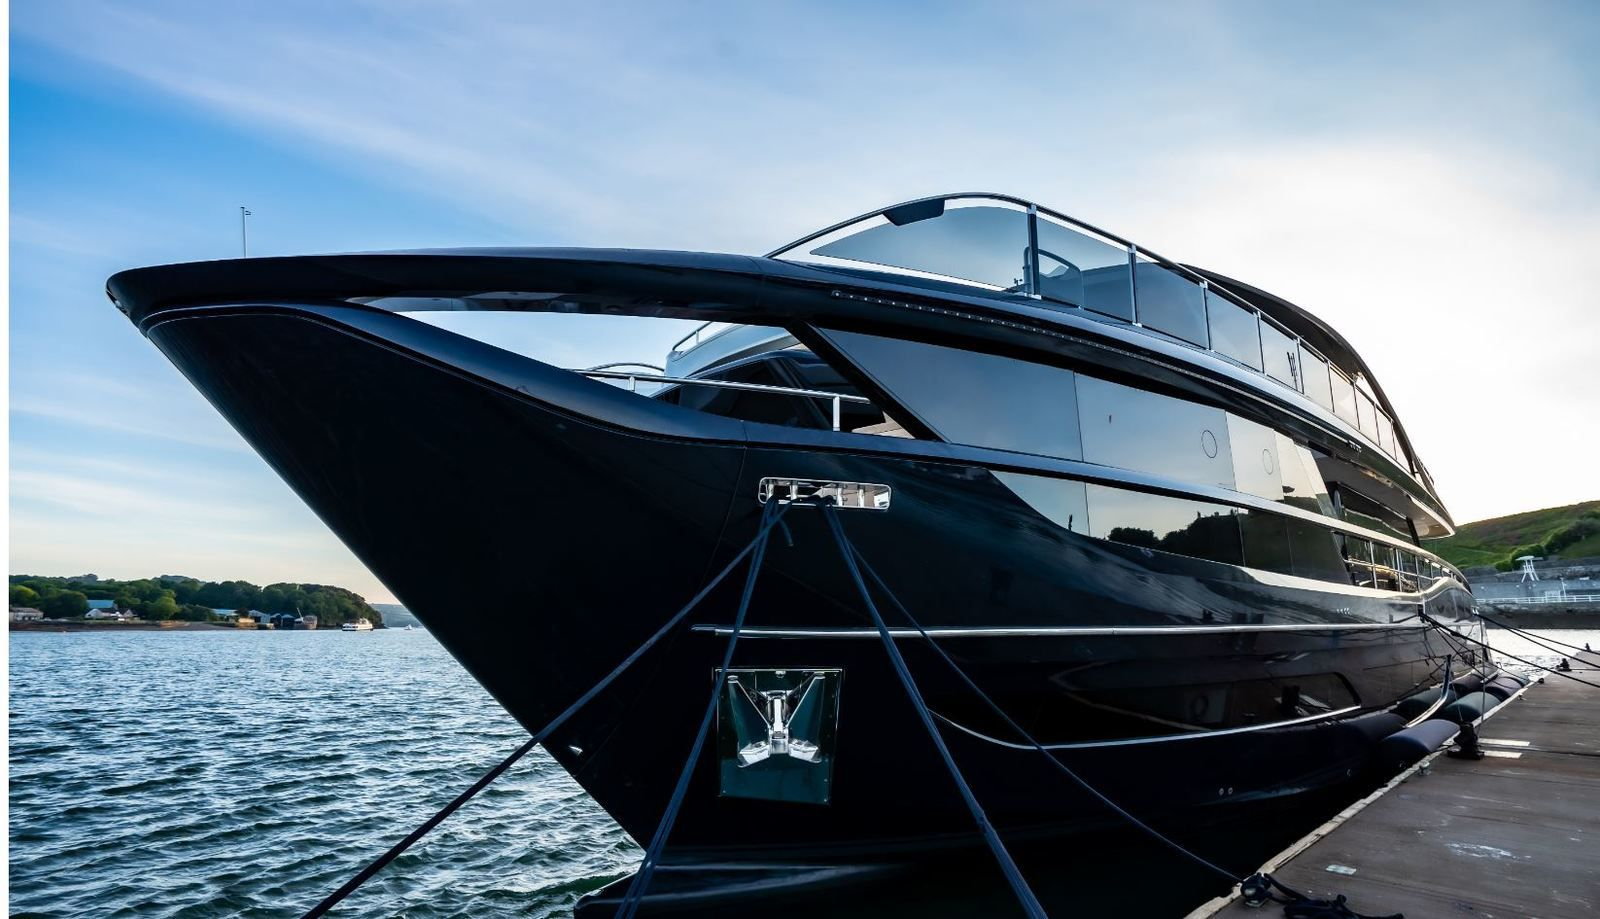 Yachting - Princess X 95, the first model in a new motoryacht range